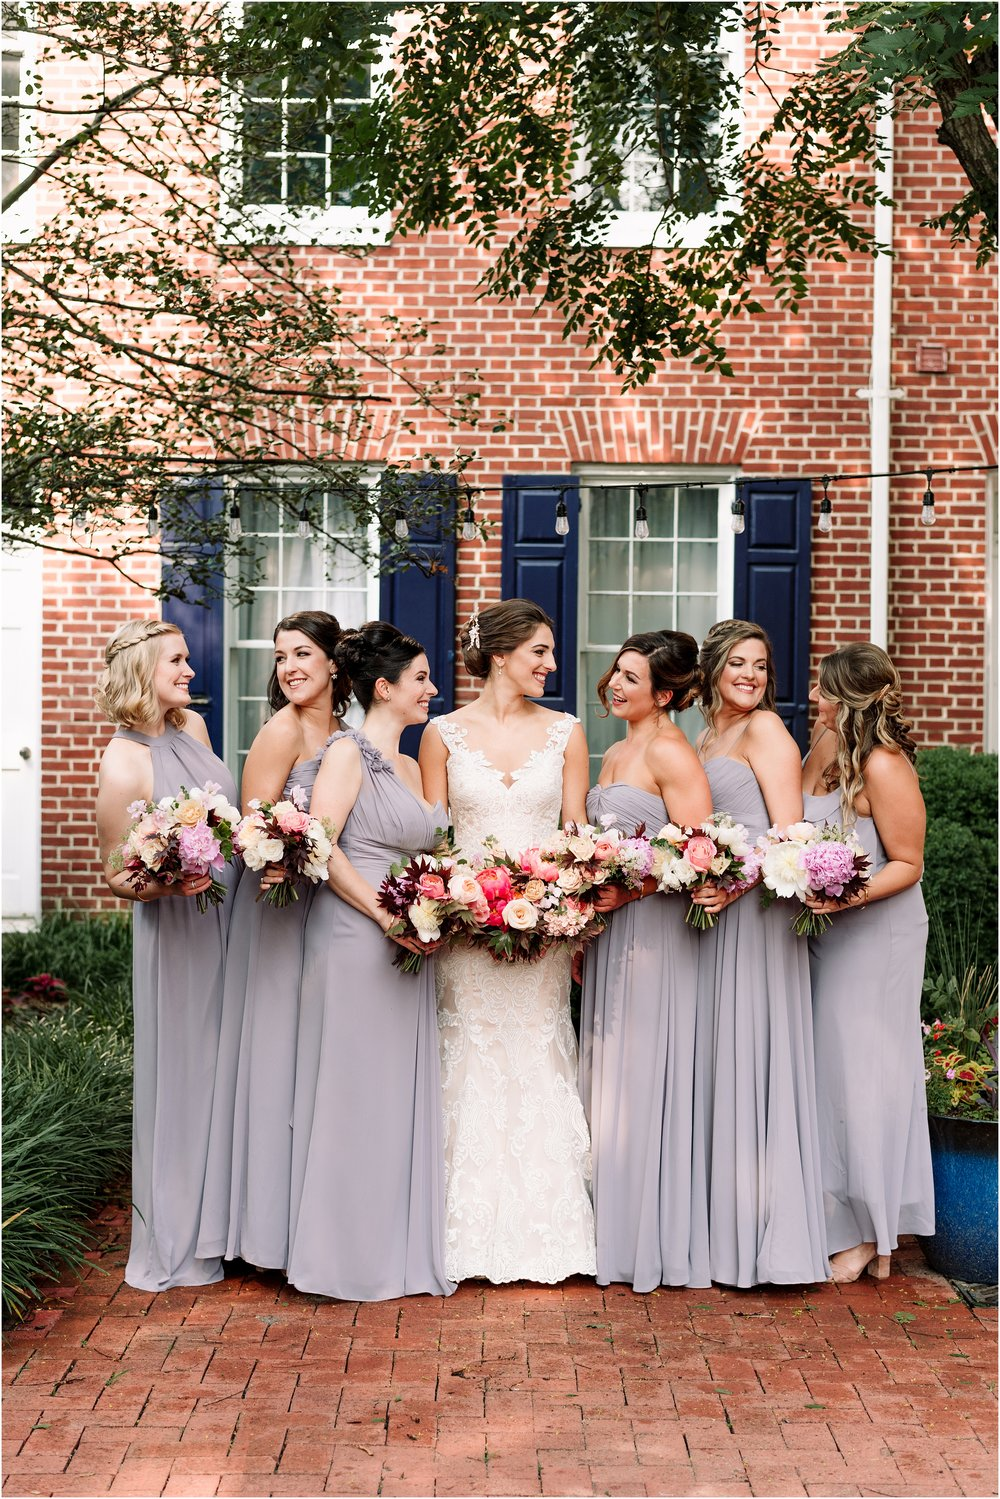 hannah leigh photography 1840s plaza wedding baltimore md_0142.jpg